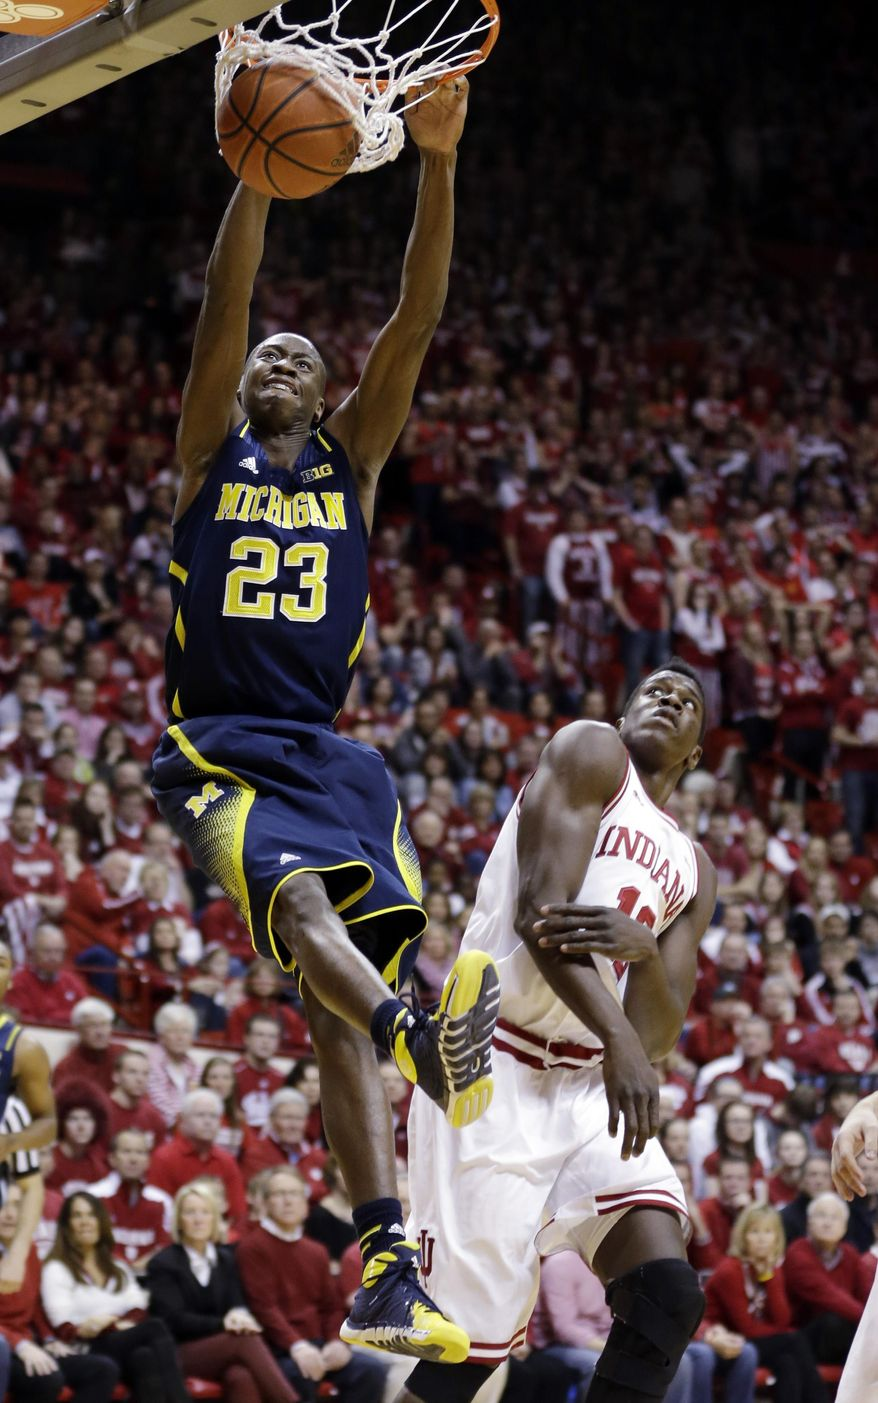 Michigan guard Caris LeVert (23) dunks over Indiana forward Hanner Mosquera-Perea in the first half of an NCAA college basketball game in Bloomington, Ind., Sunday, Feb. 2, 2014. (AP Photo/Michael Conroy)